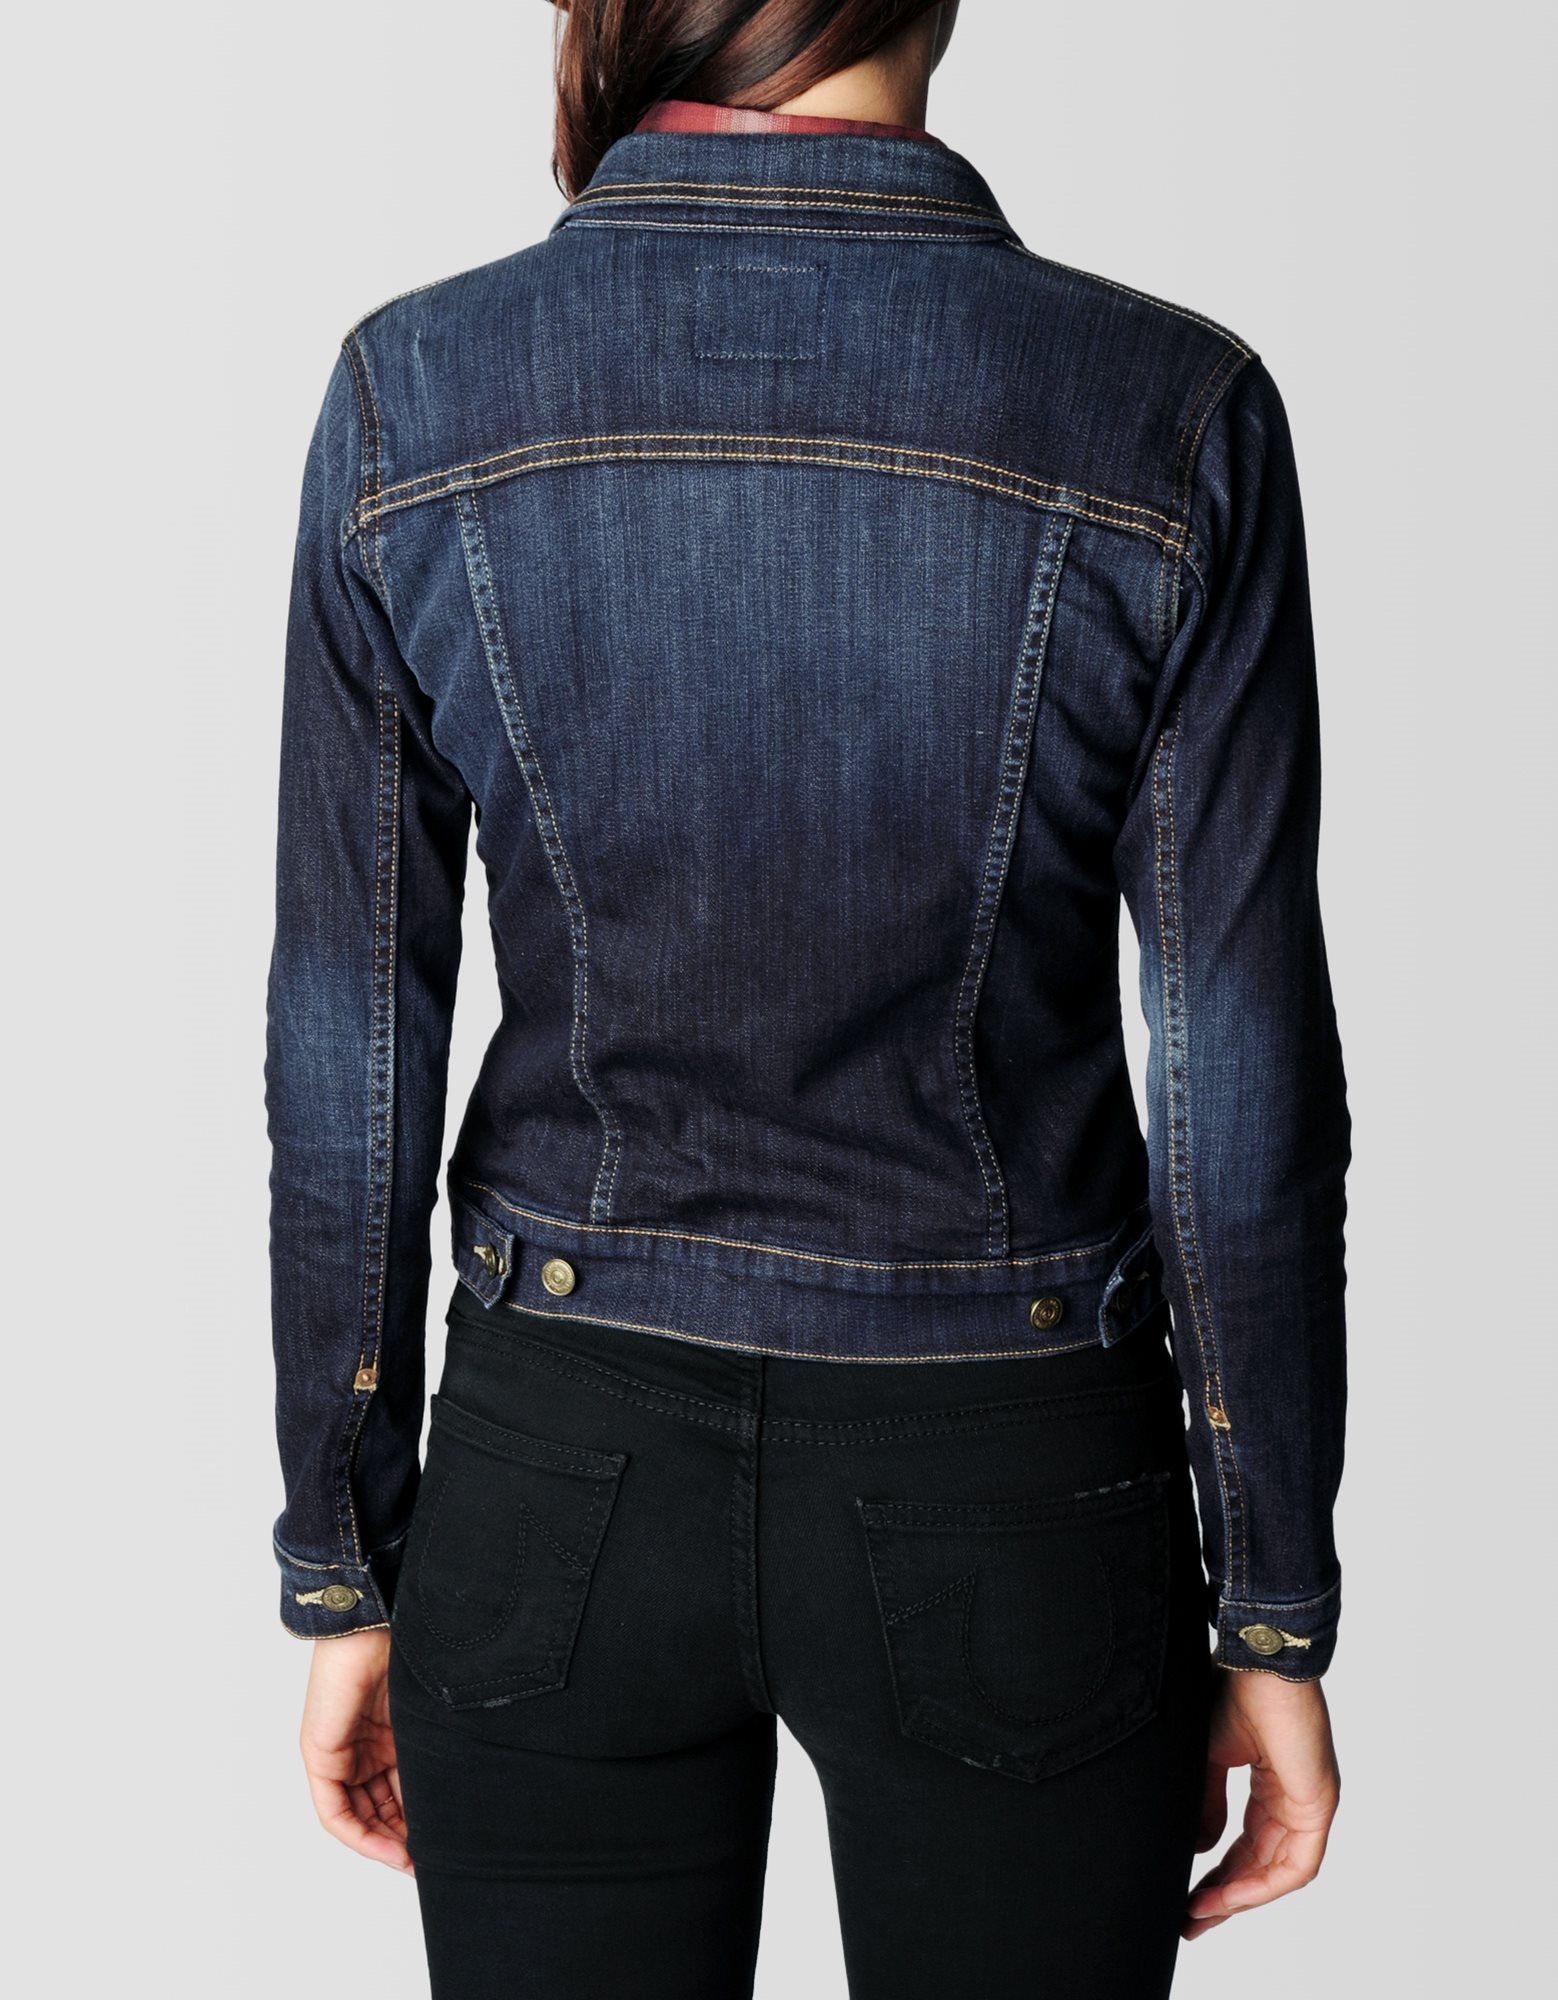 Fitted Denim Jacket Womens - Coat - 936.3KB